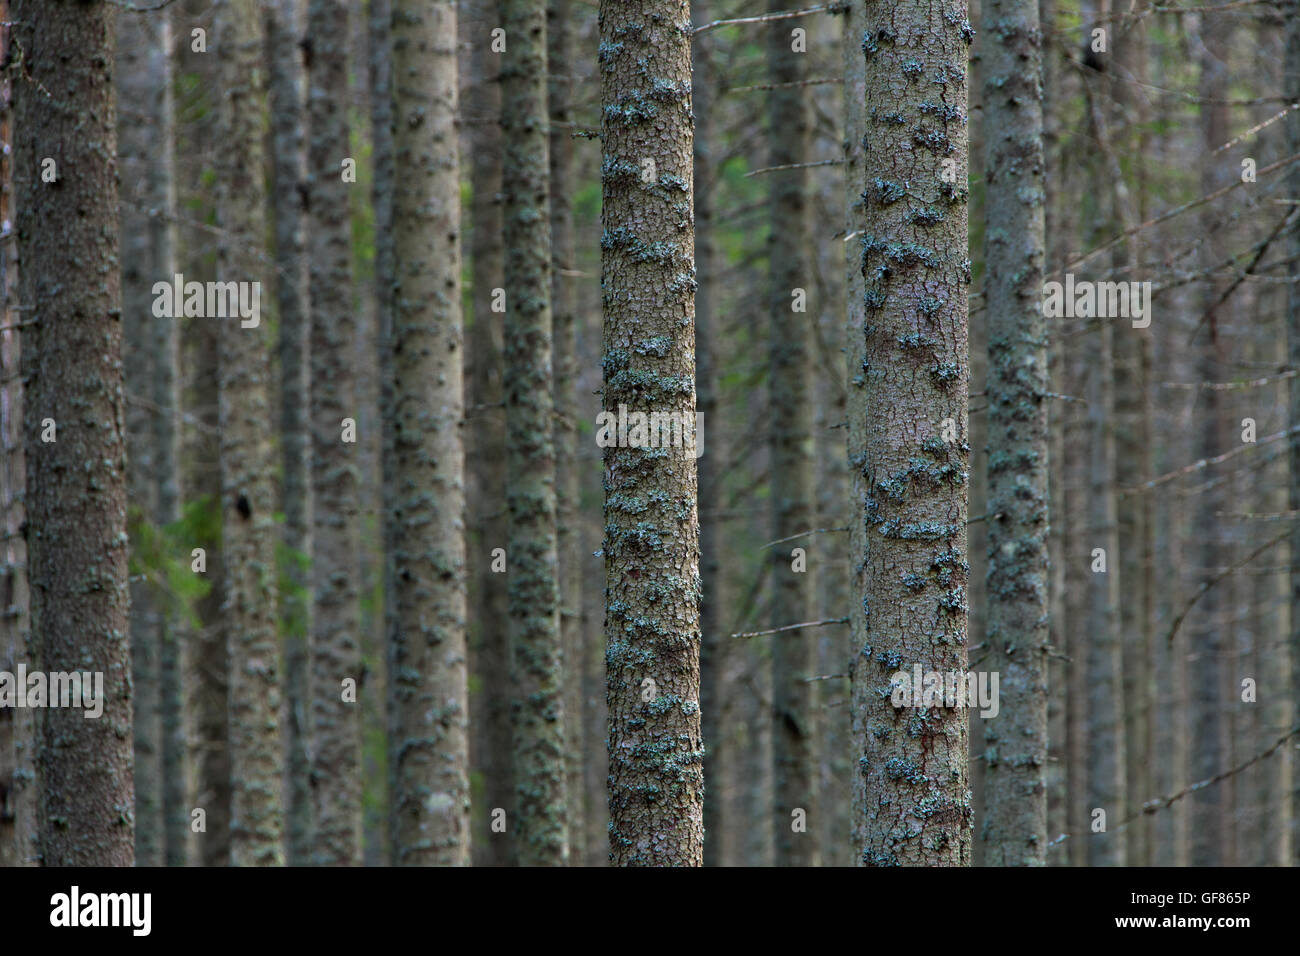 Norway spruces / European spruce (Picea abies) tree trunks covered in lichen in coniferous forest - Stock Image